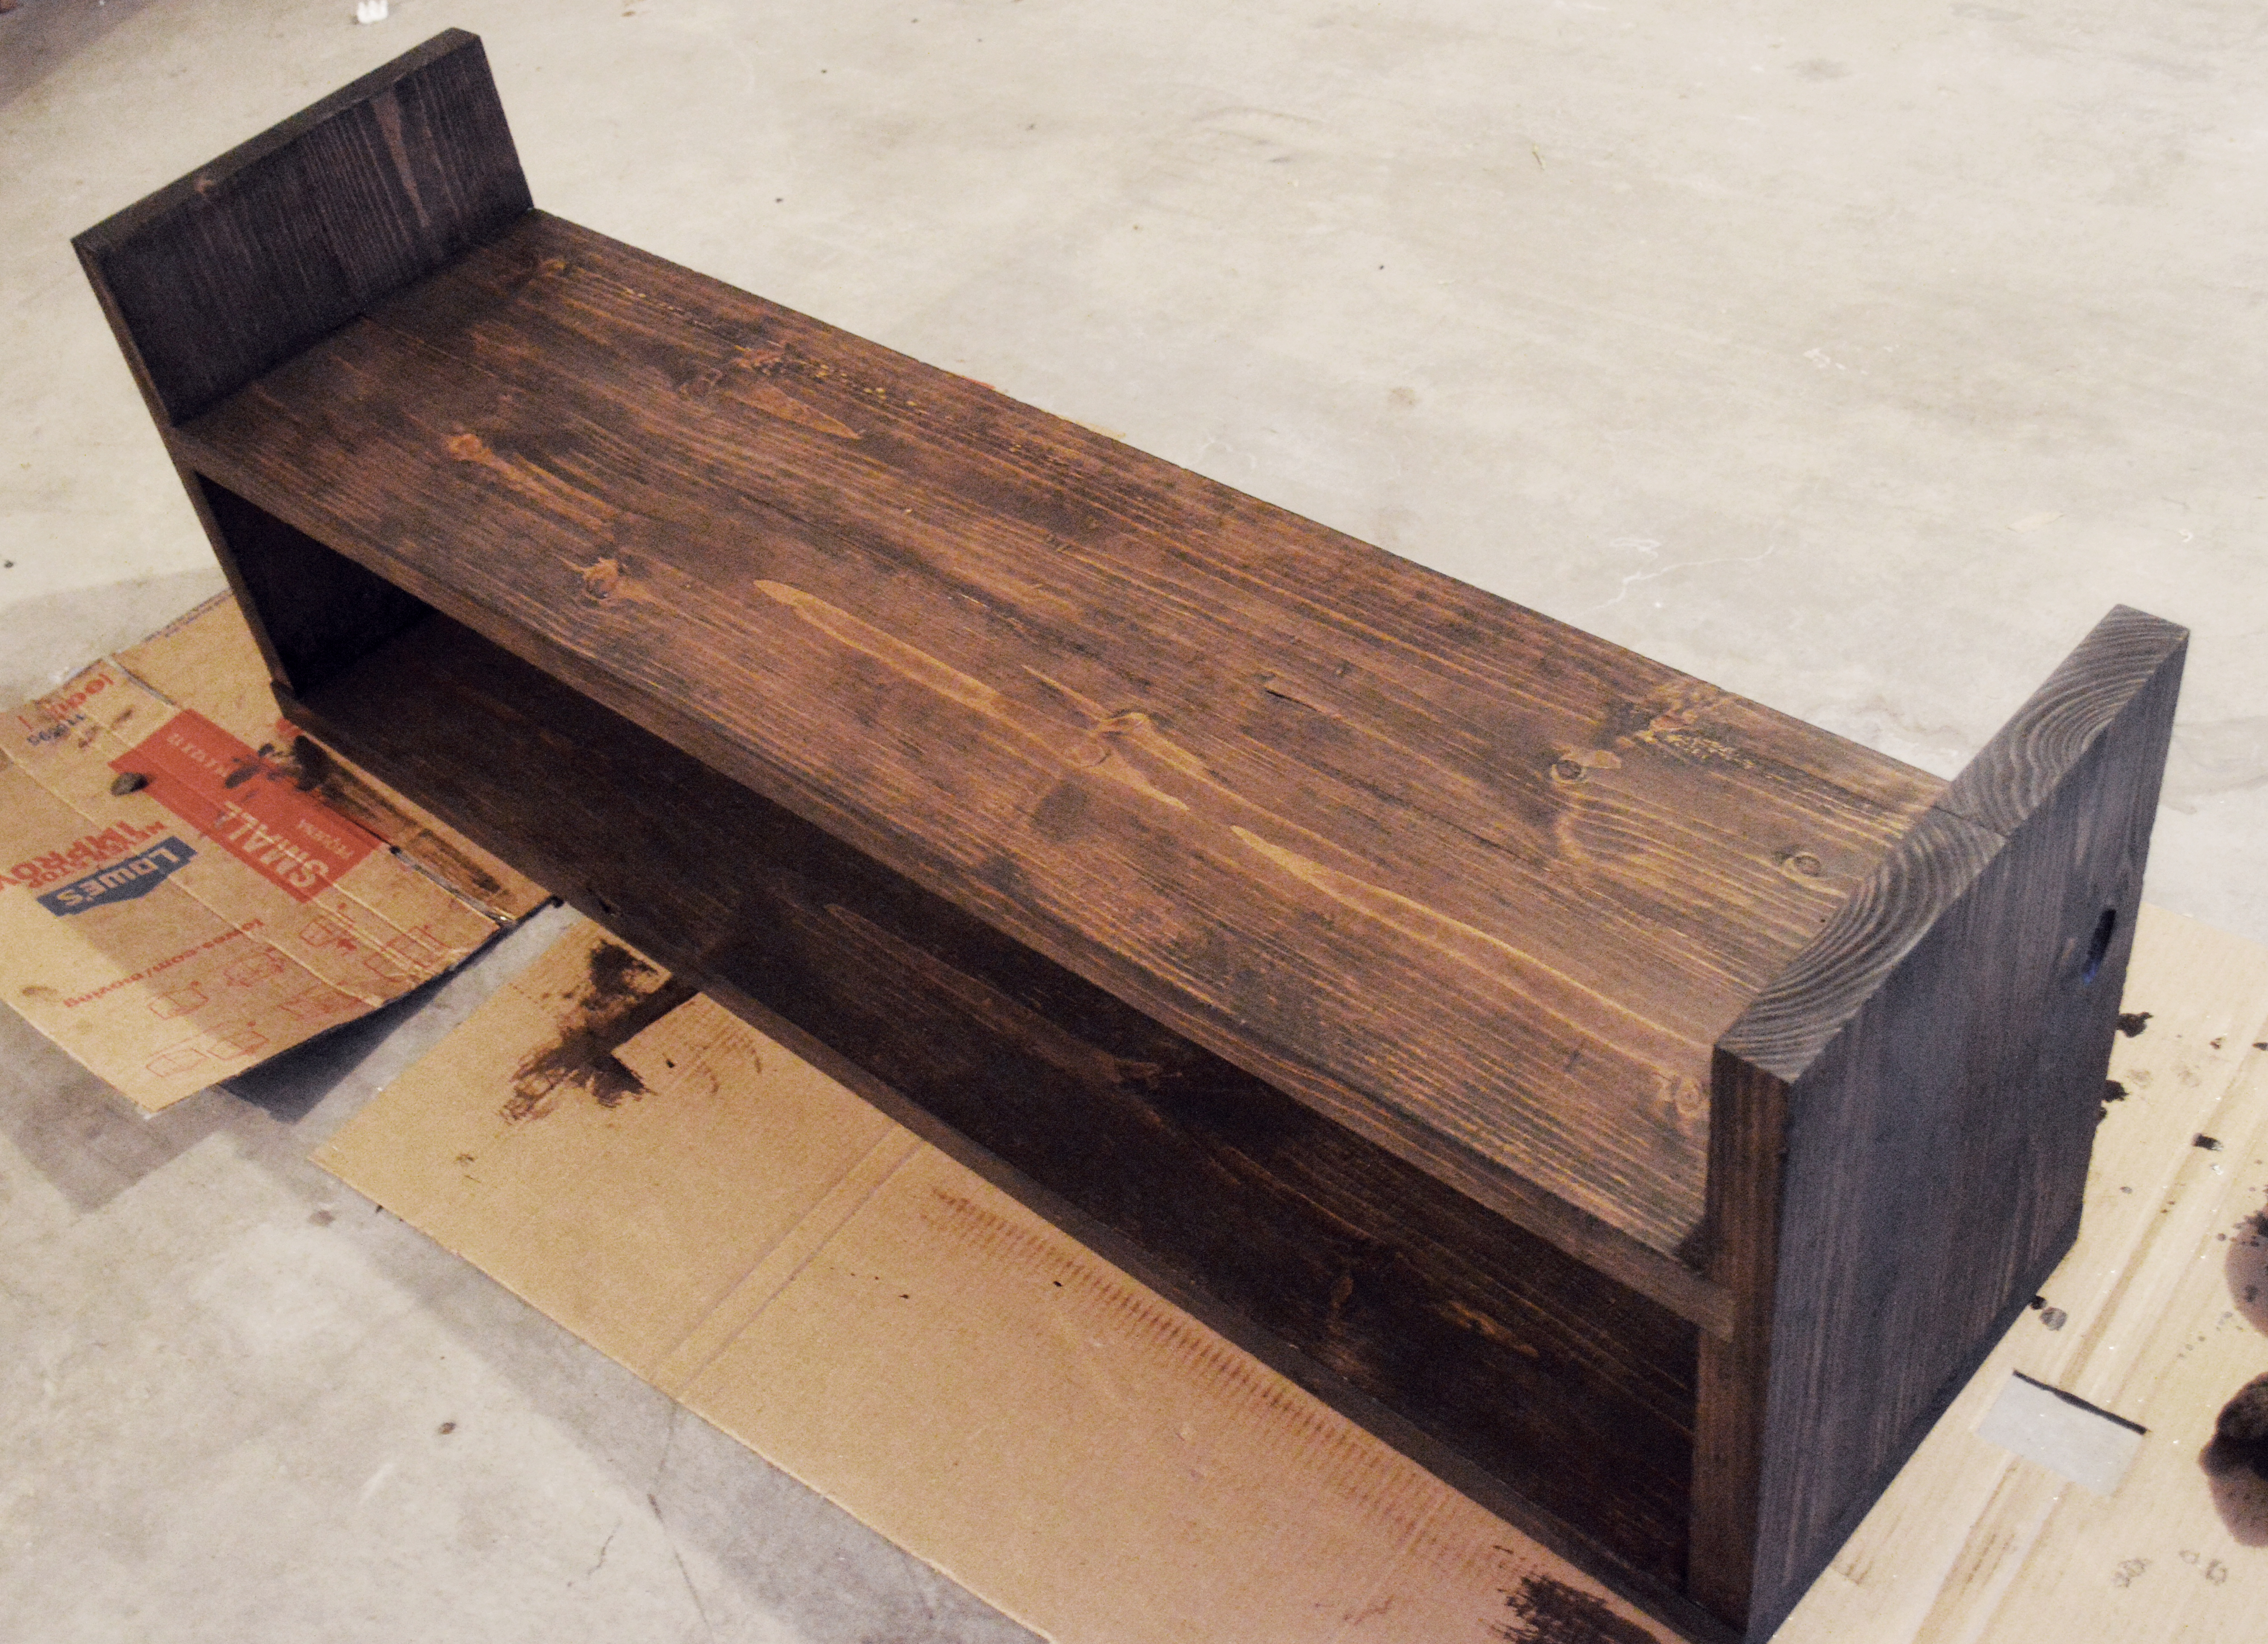 Rustic Chic DIY: Stain and Distress like a Pro The Riojas House for ElleryDesigns.com